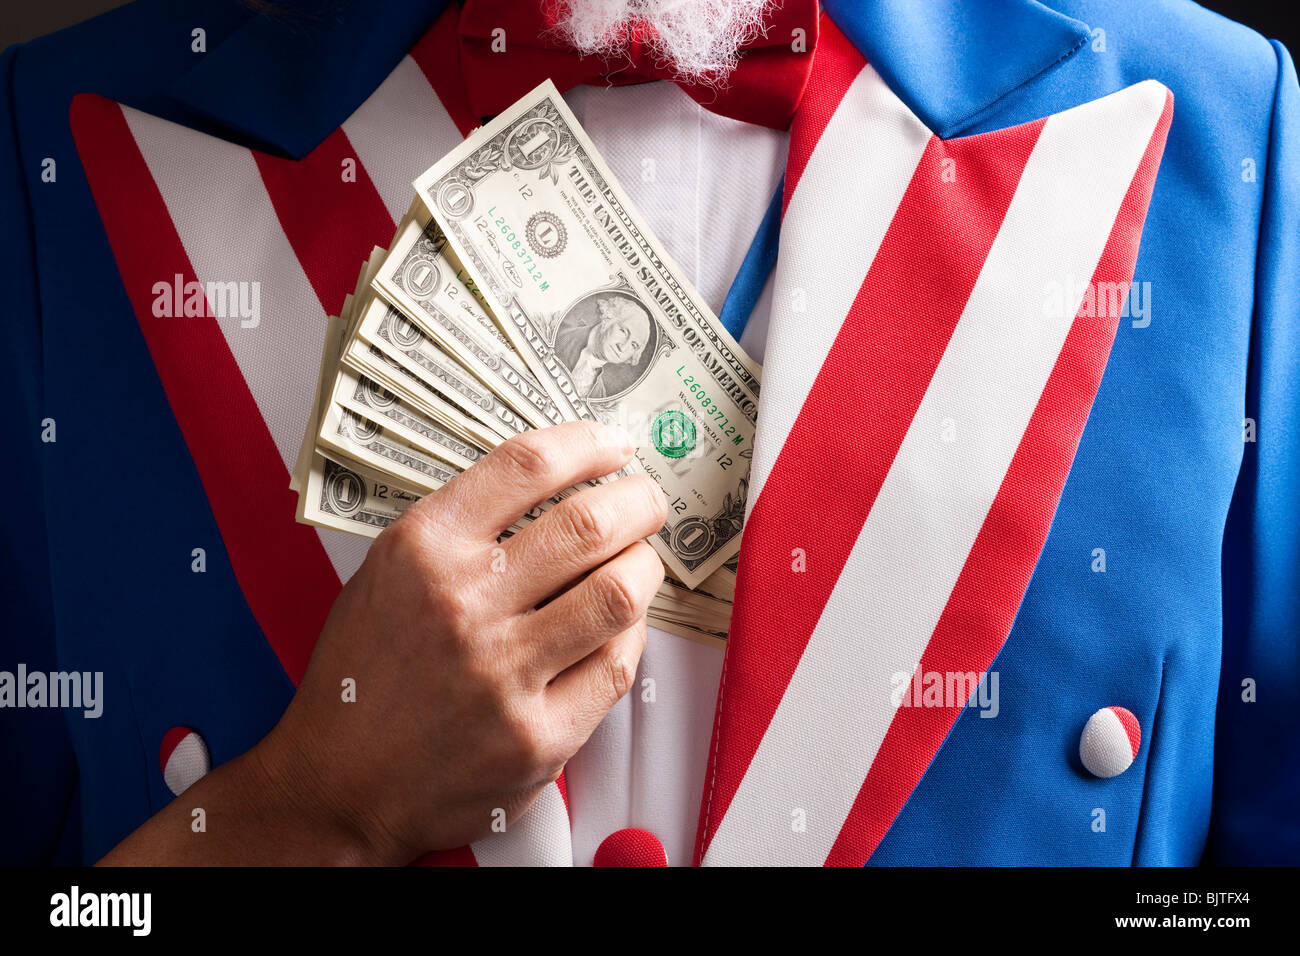 Hand hiding banknotes under vest, studio shot - Stock Image